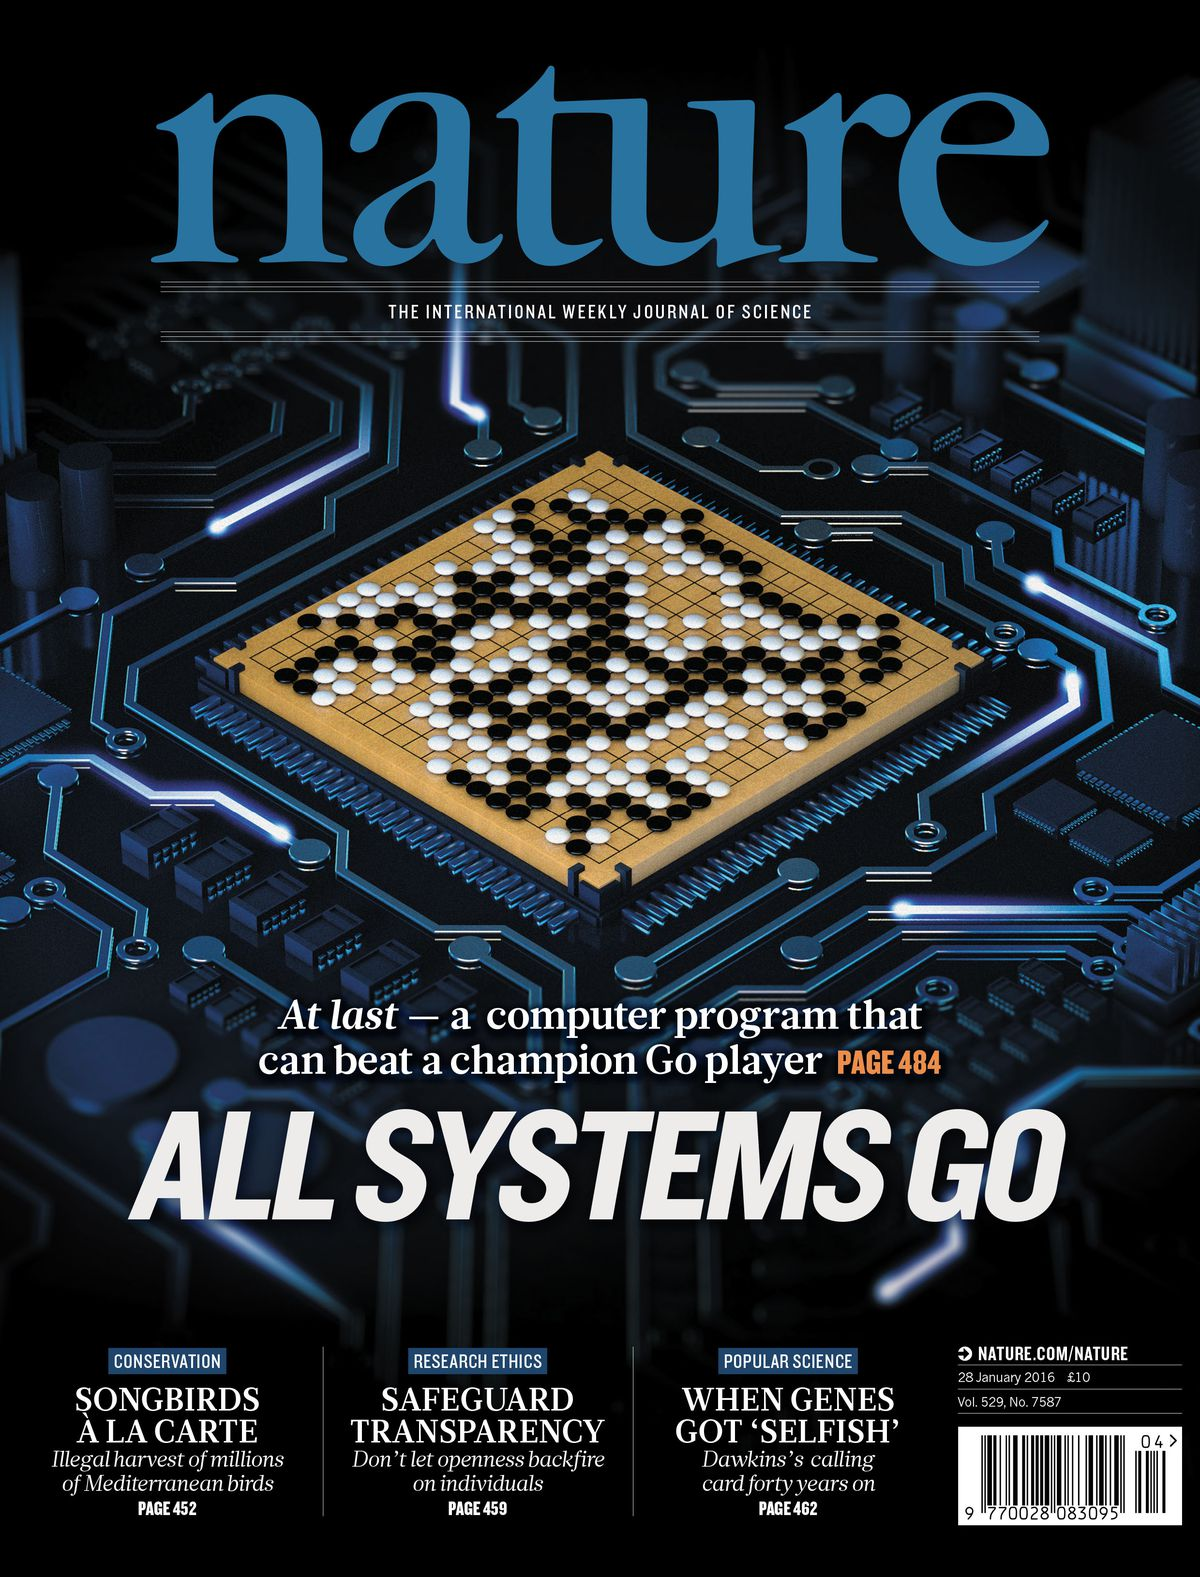 January 28 cover of Nature